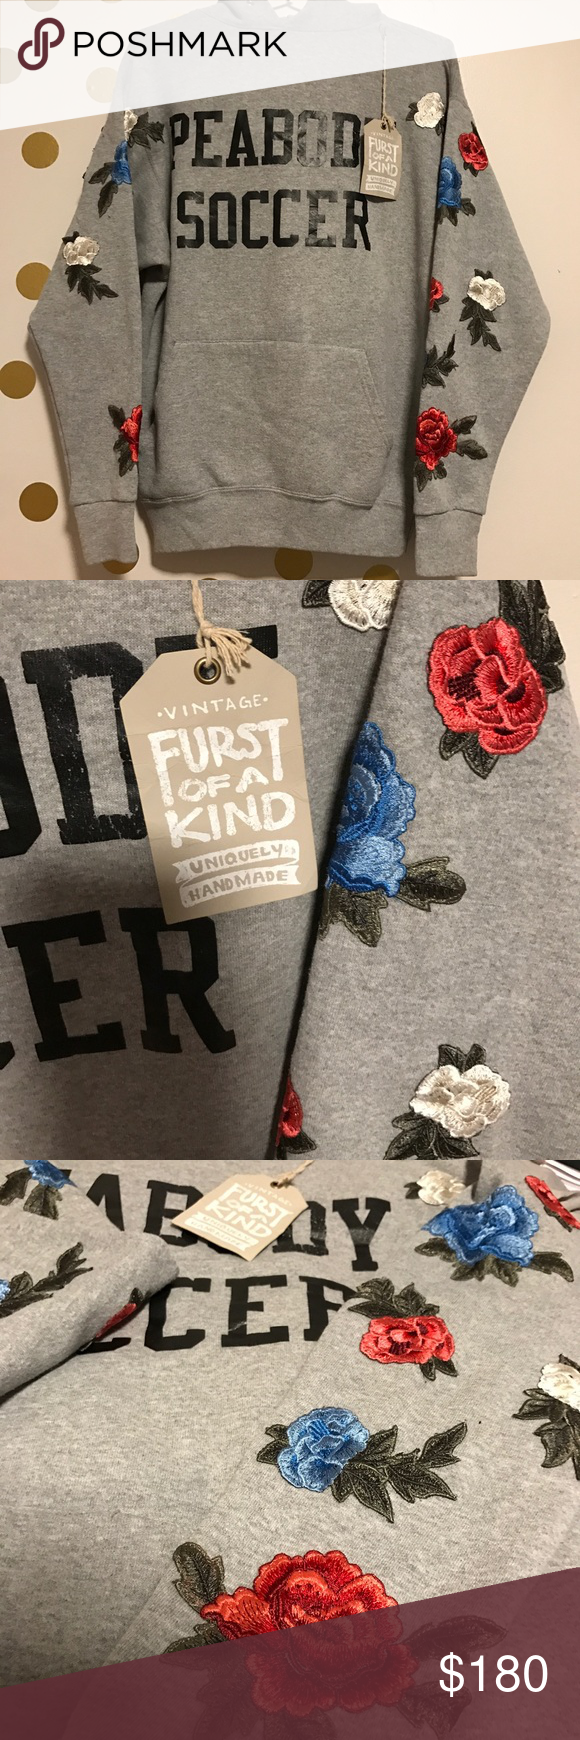 Furst of a Kind Vintage Floral Sweater • brand new with tags • Has rose applique going down the sleeves  • uniquely made • prices are firm • no trades - ONE SIZE LF Tops Sweatshirts & Hoodies